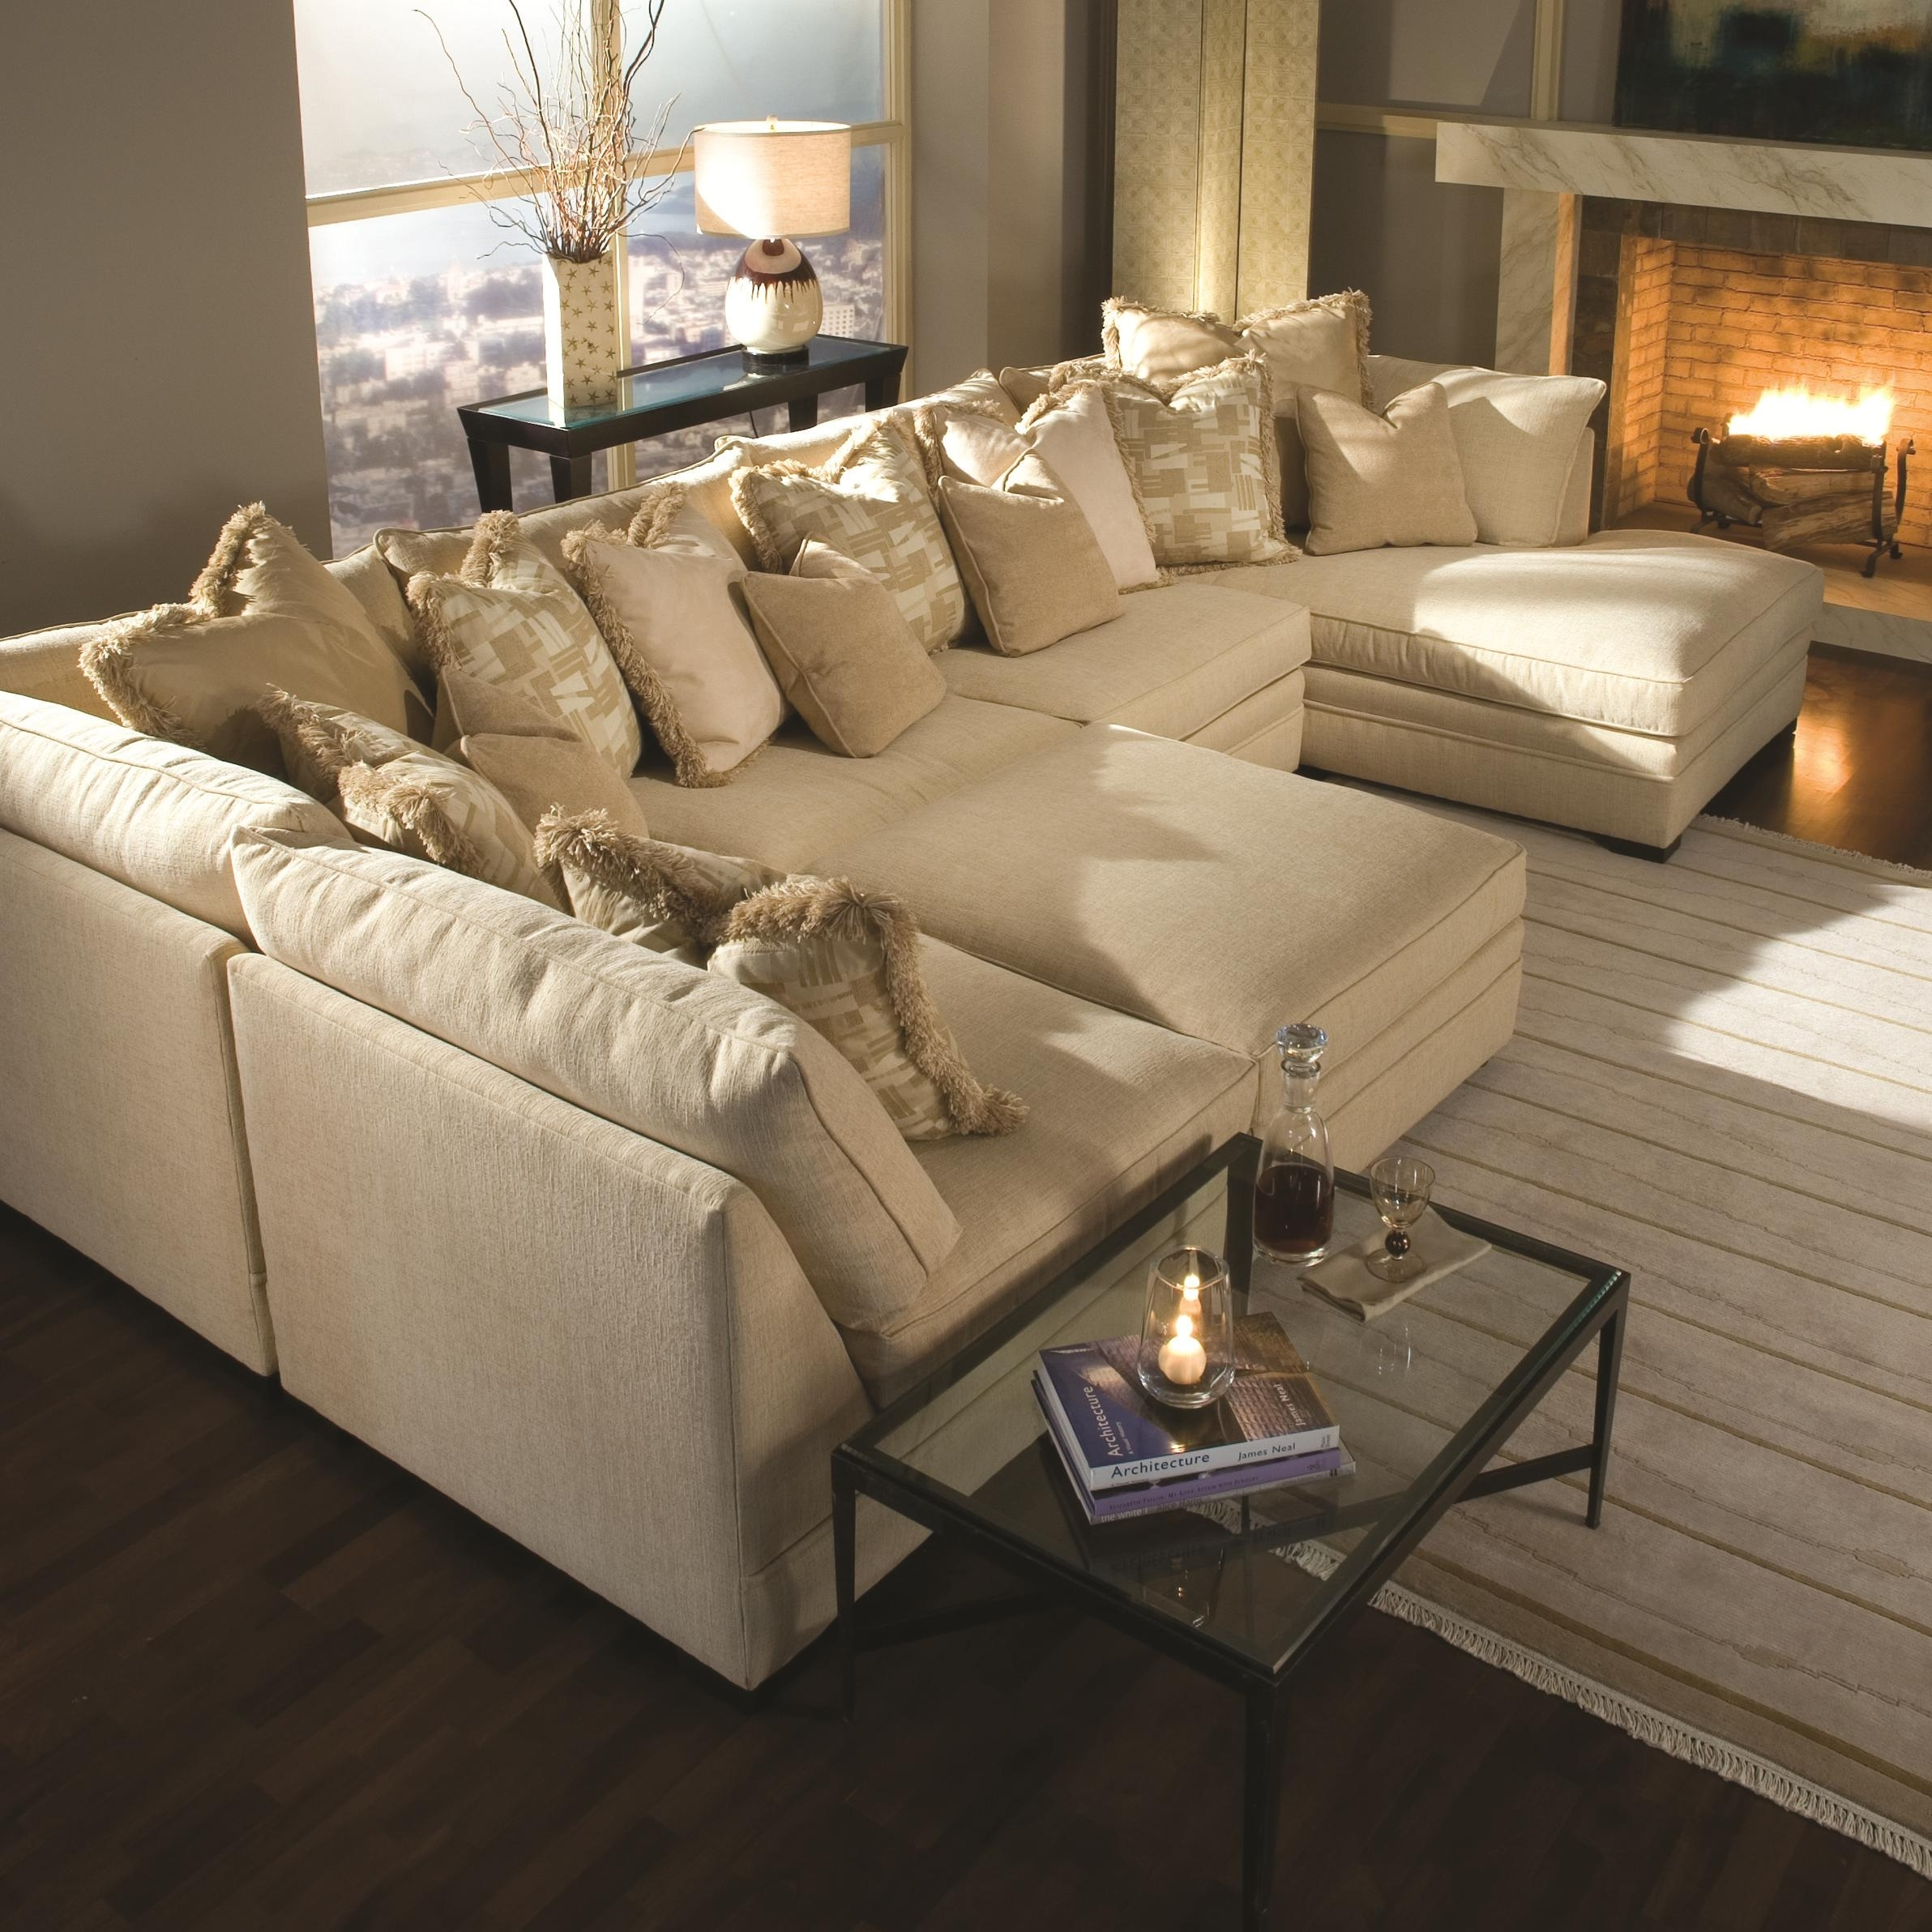 Sectional Sofas Mississauga | Functionalities Throughout Mississauga Sectional Sofas (Image 9 of 10)